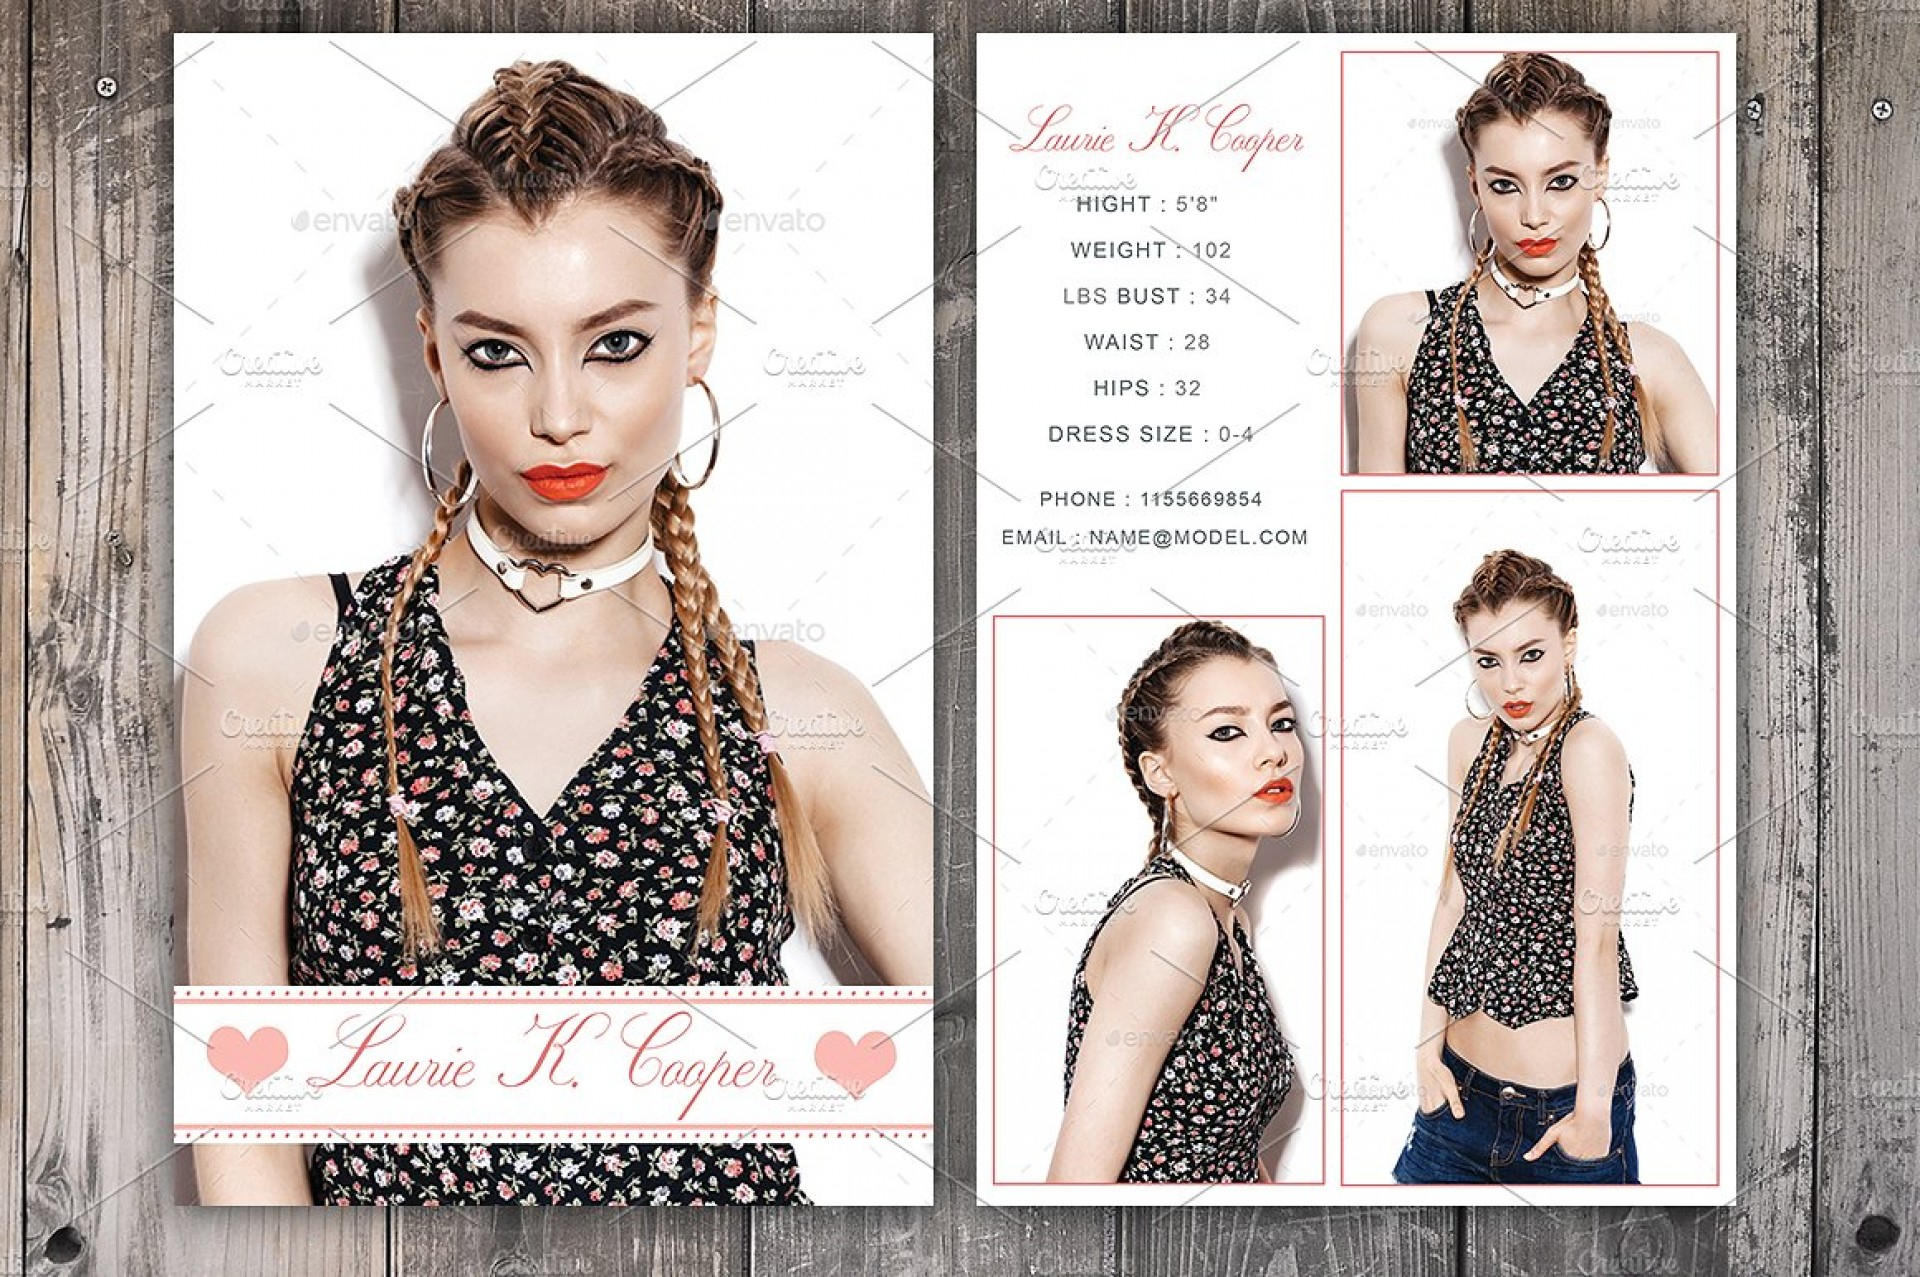 Free Comp Card Template Brochure Templates Microsoft Word With Regard To Comp Card Template Download